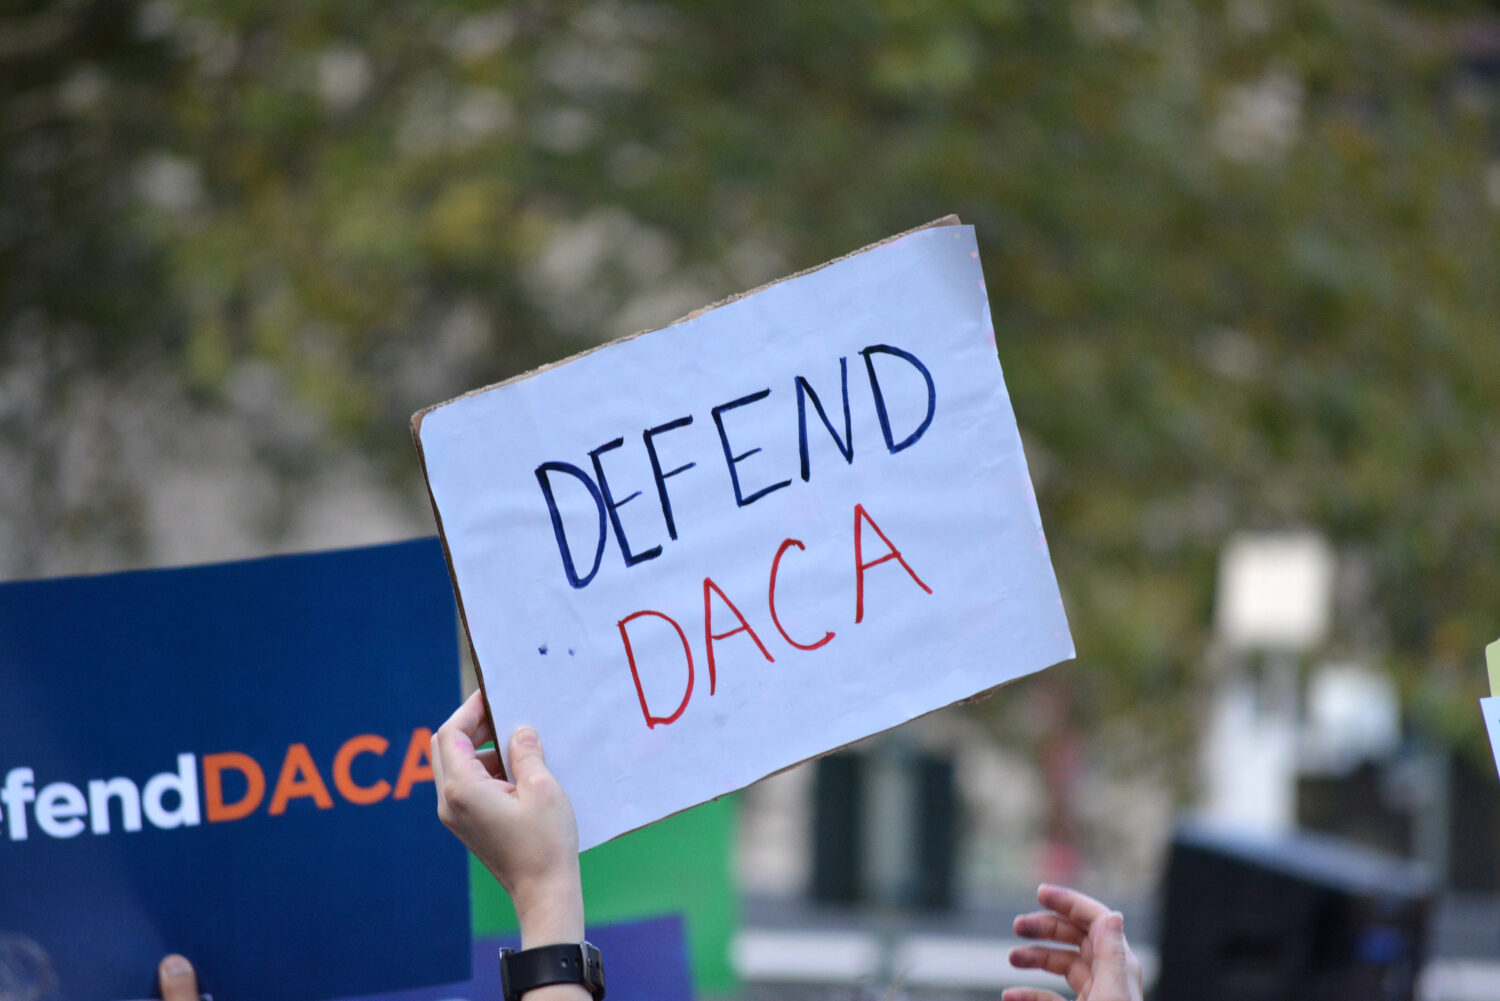 Defend DACA sign at a protest